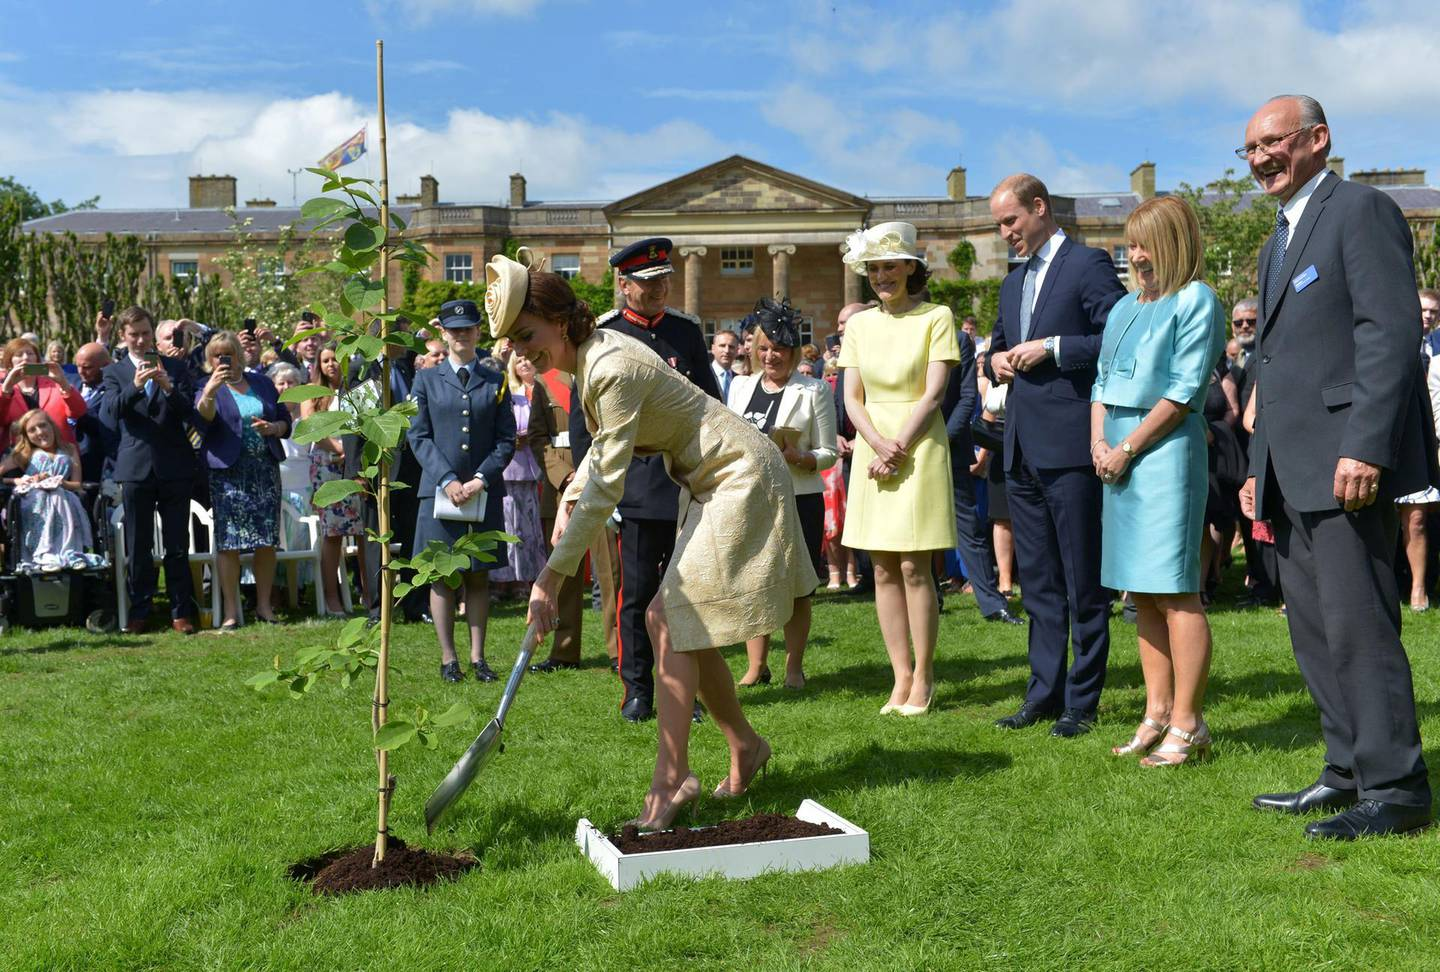 Mandatory Credit: Photo by Press Eye Ltd/Shutterstock (5731057l)Prince William and Catherine Duchess of Cambridge plant a tree at the Royal Garden Party at Hillsborough CastleAnnual Garden Party in Hillsborough Castle, Northern Ireland, UK - 14 Jun 2016